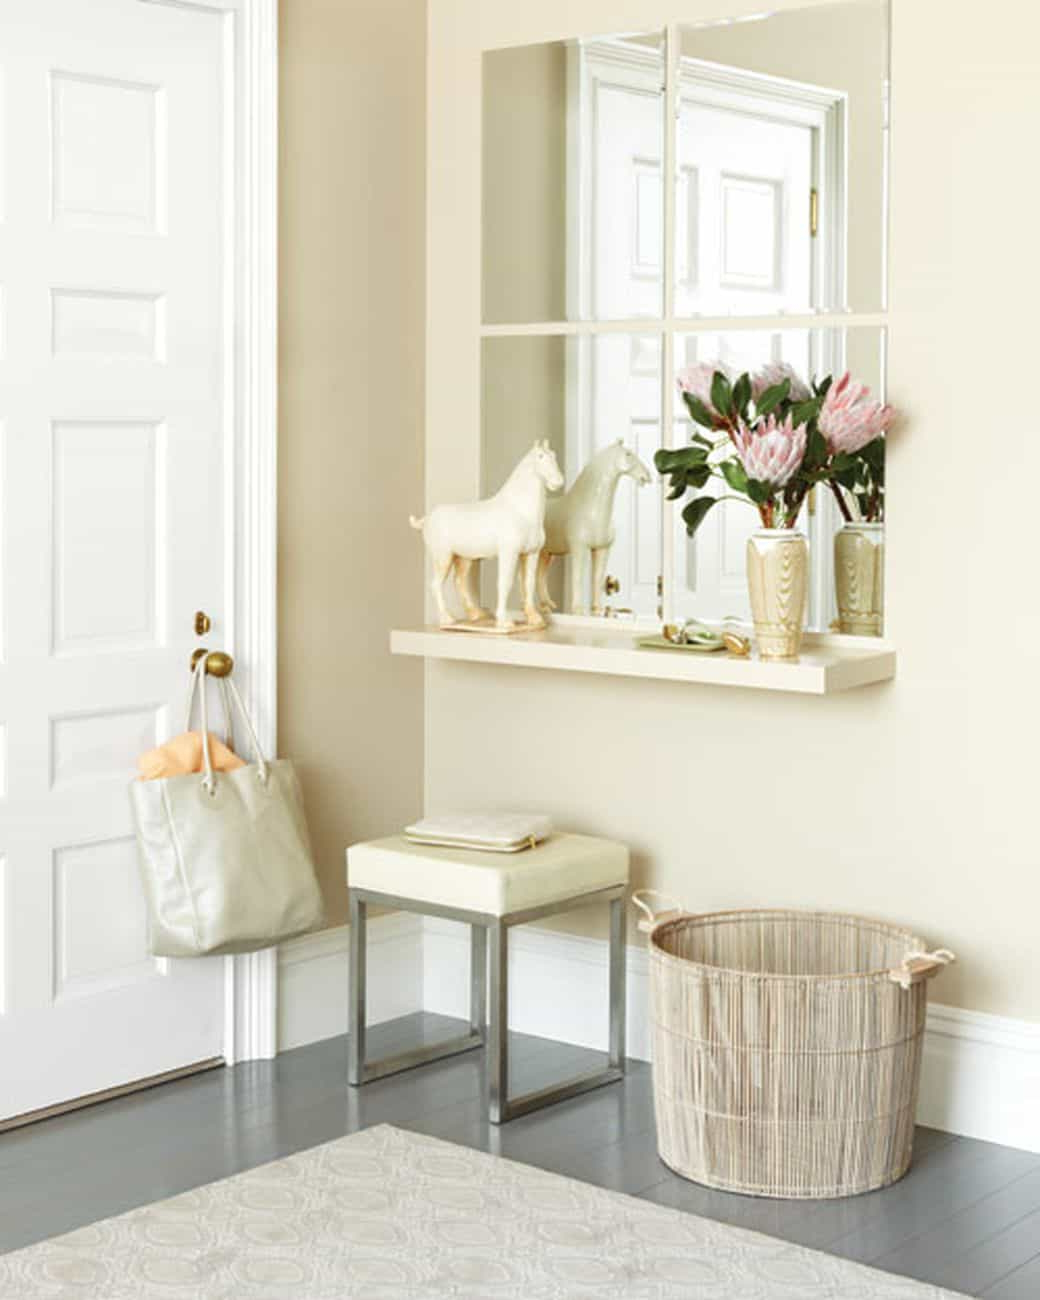 Most Popular Entryway With Wall Mirrors And Shelf – Types Of Entryway Shelves For Entryway Wall Mirrors (View 13 of 20)